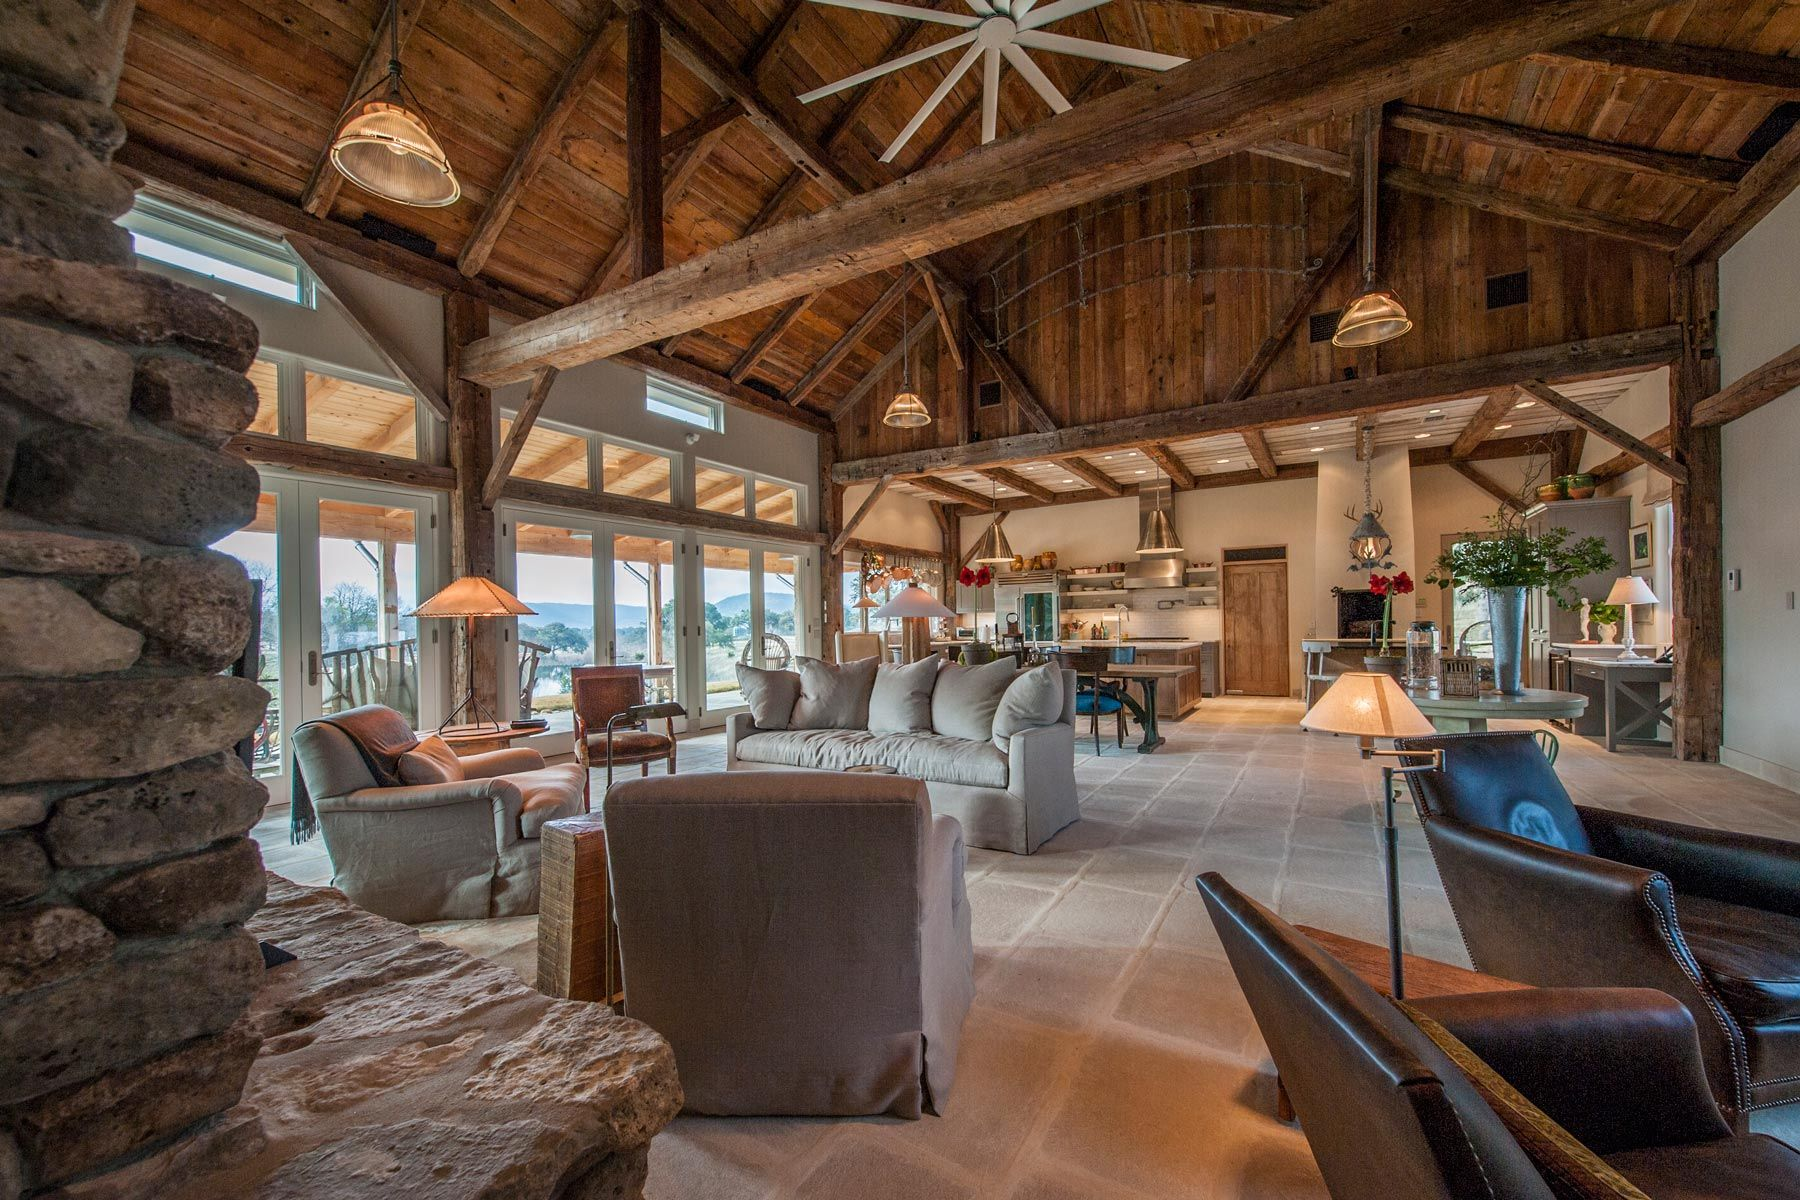 Charming Pole Barn House Interior Gallery - Best idea home design ...